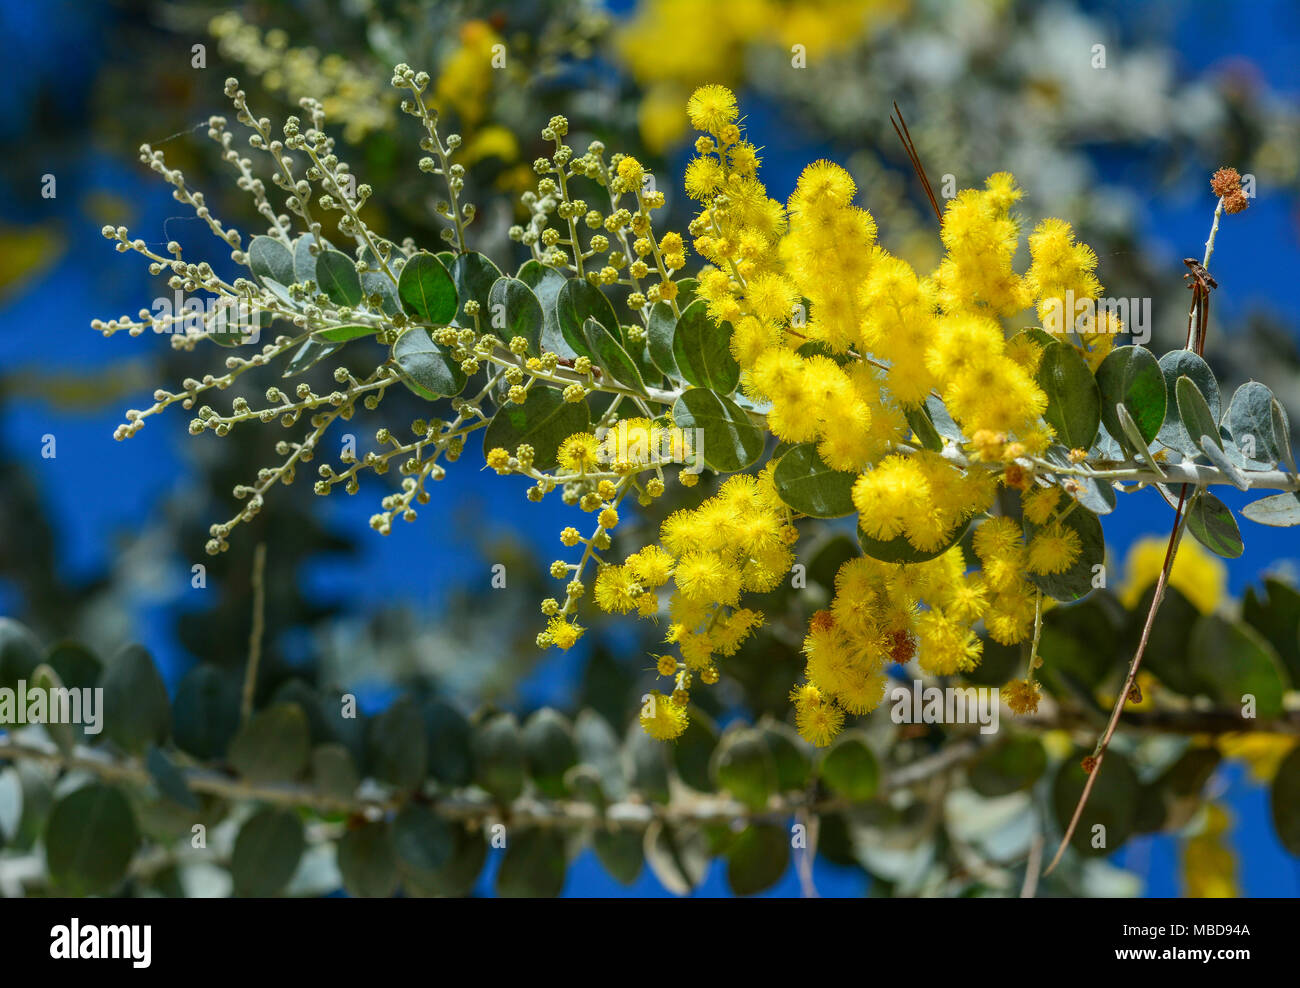 Flowering Acacia Stock Photos Flowering Acacia Stock Images Alamy